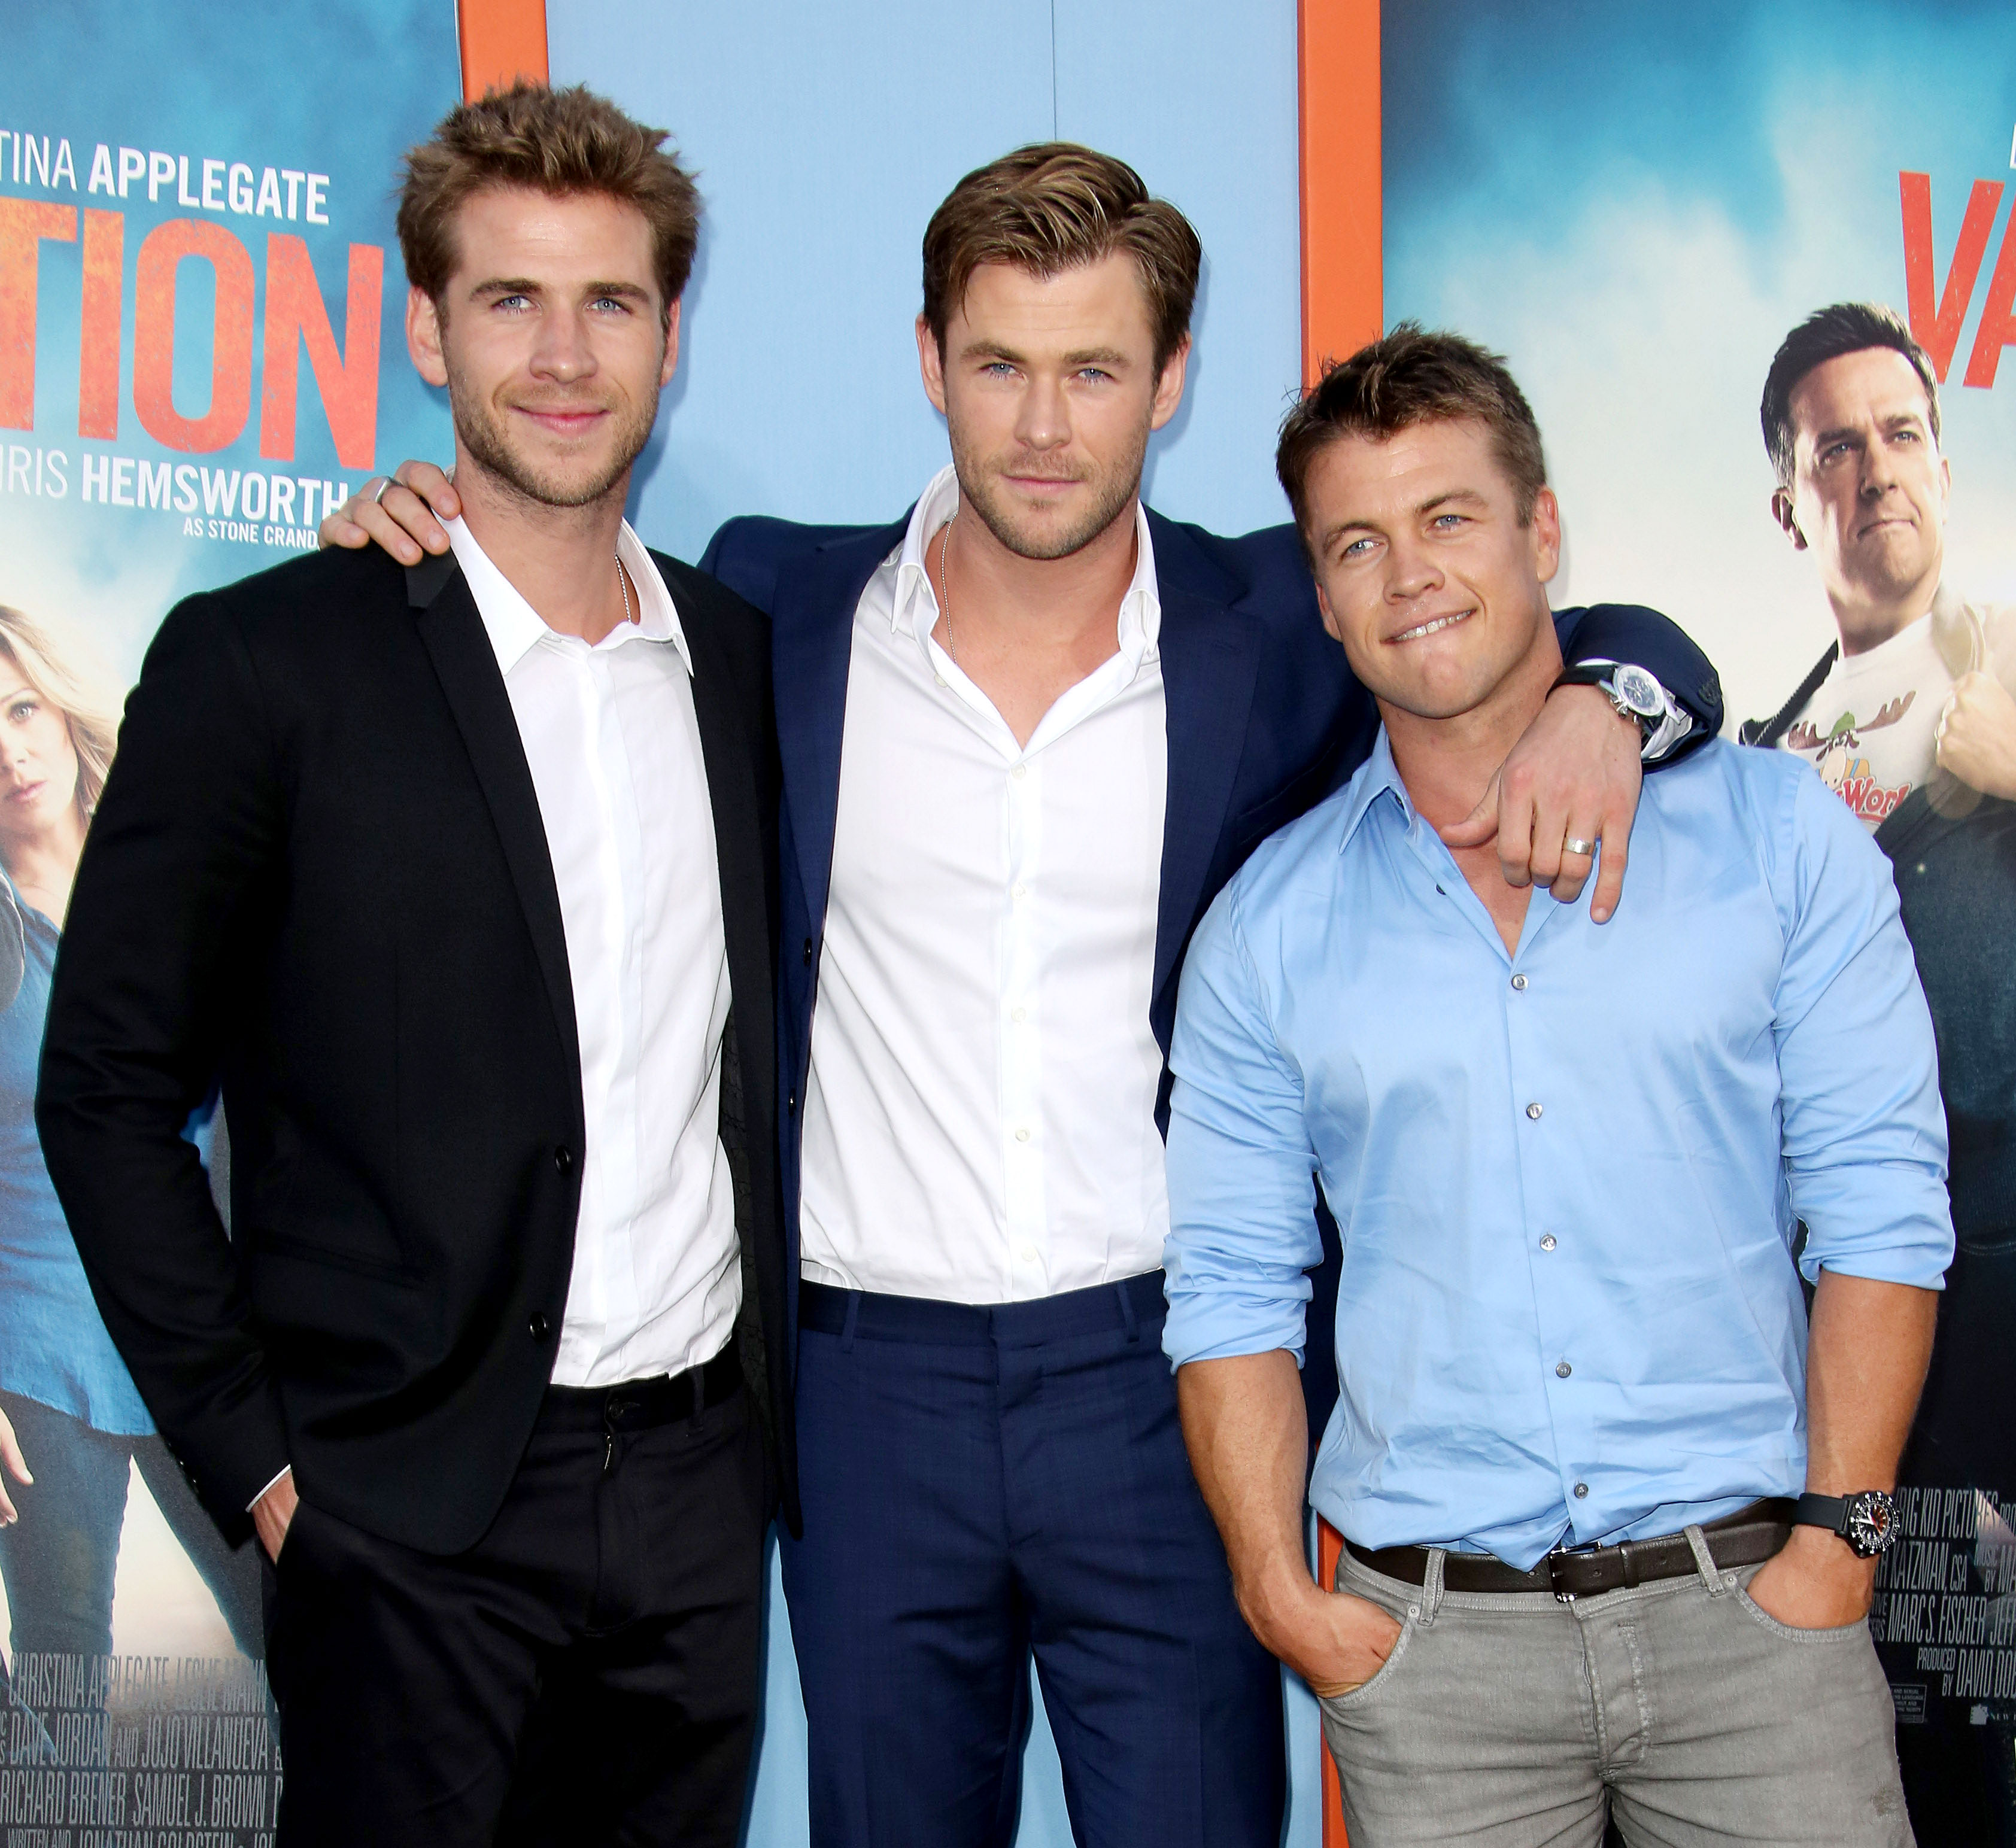 Maddison Brown Once Joked About Wanting to F--k All 3 Hemsworth Brothers